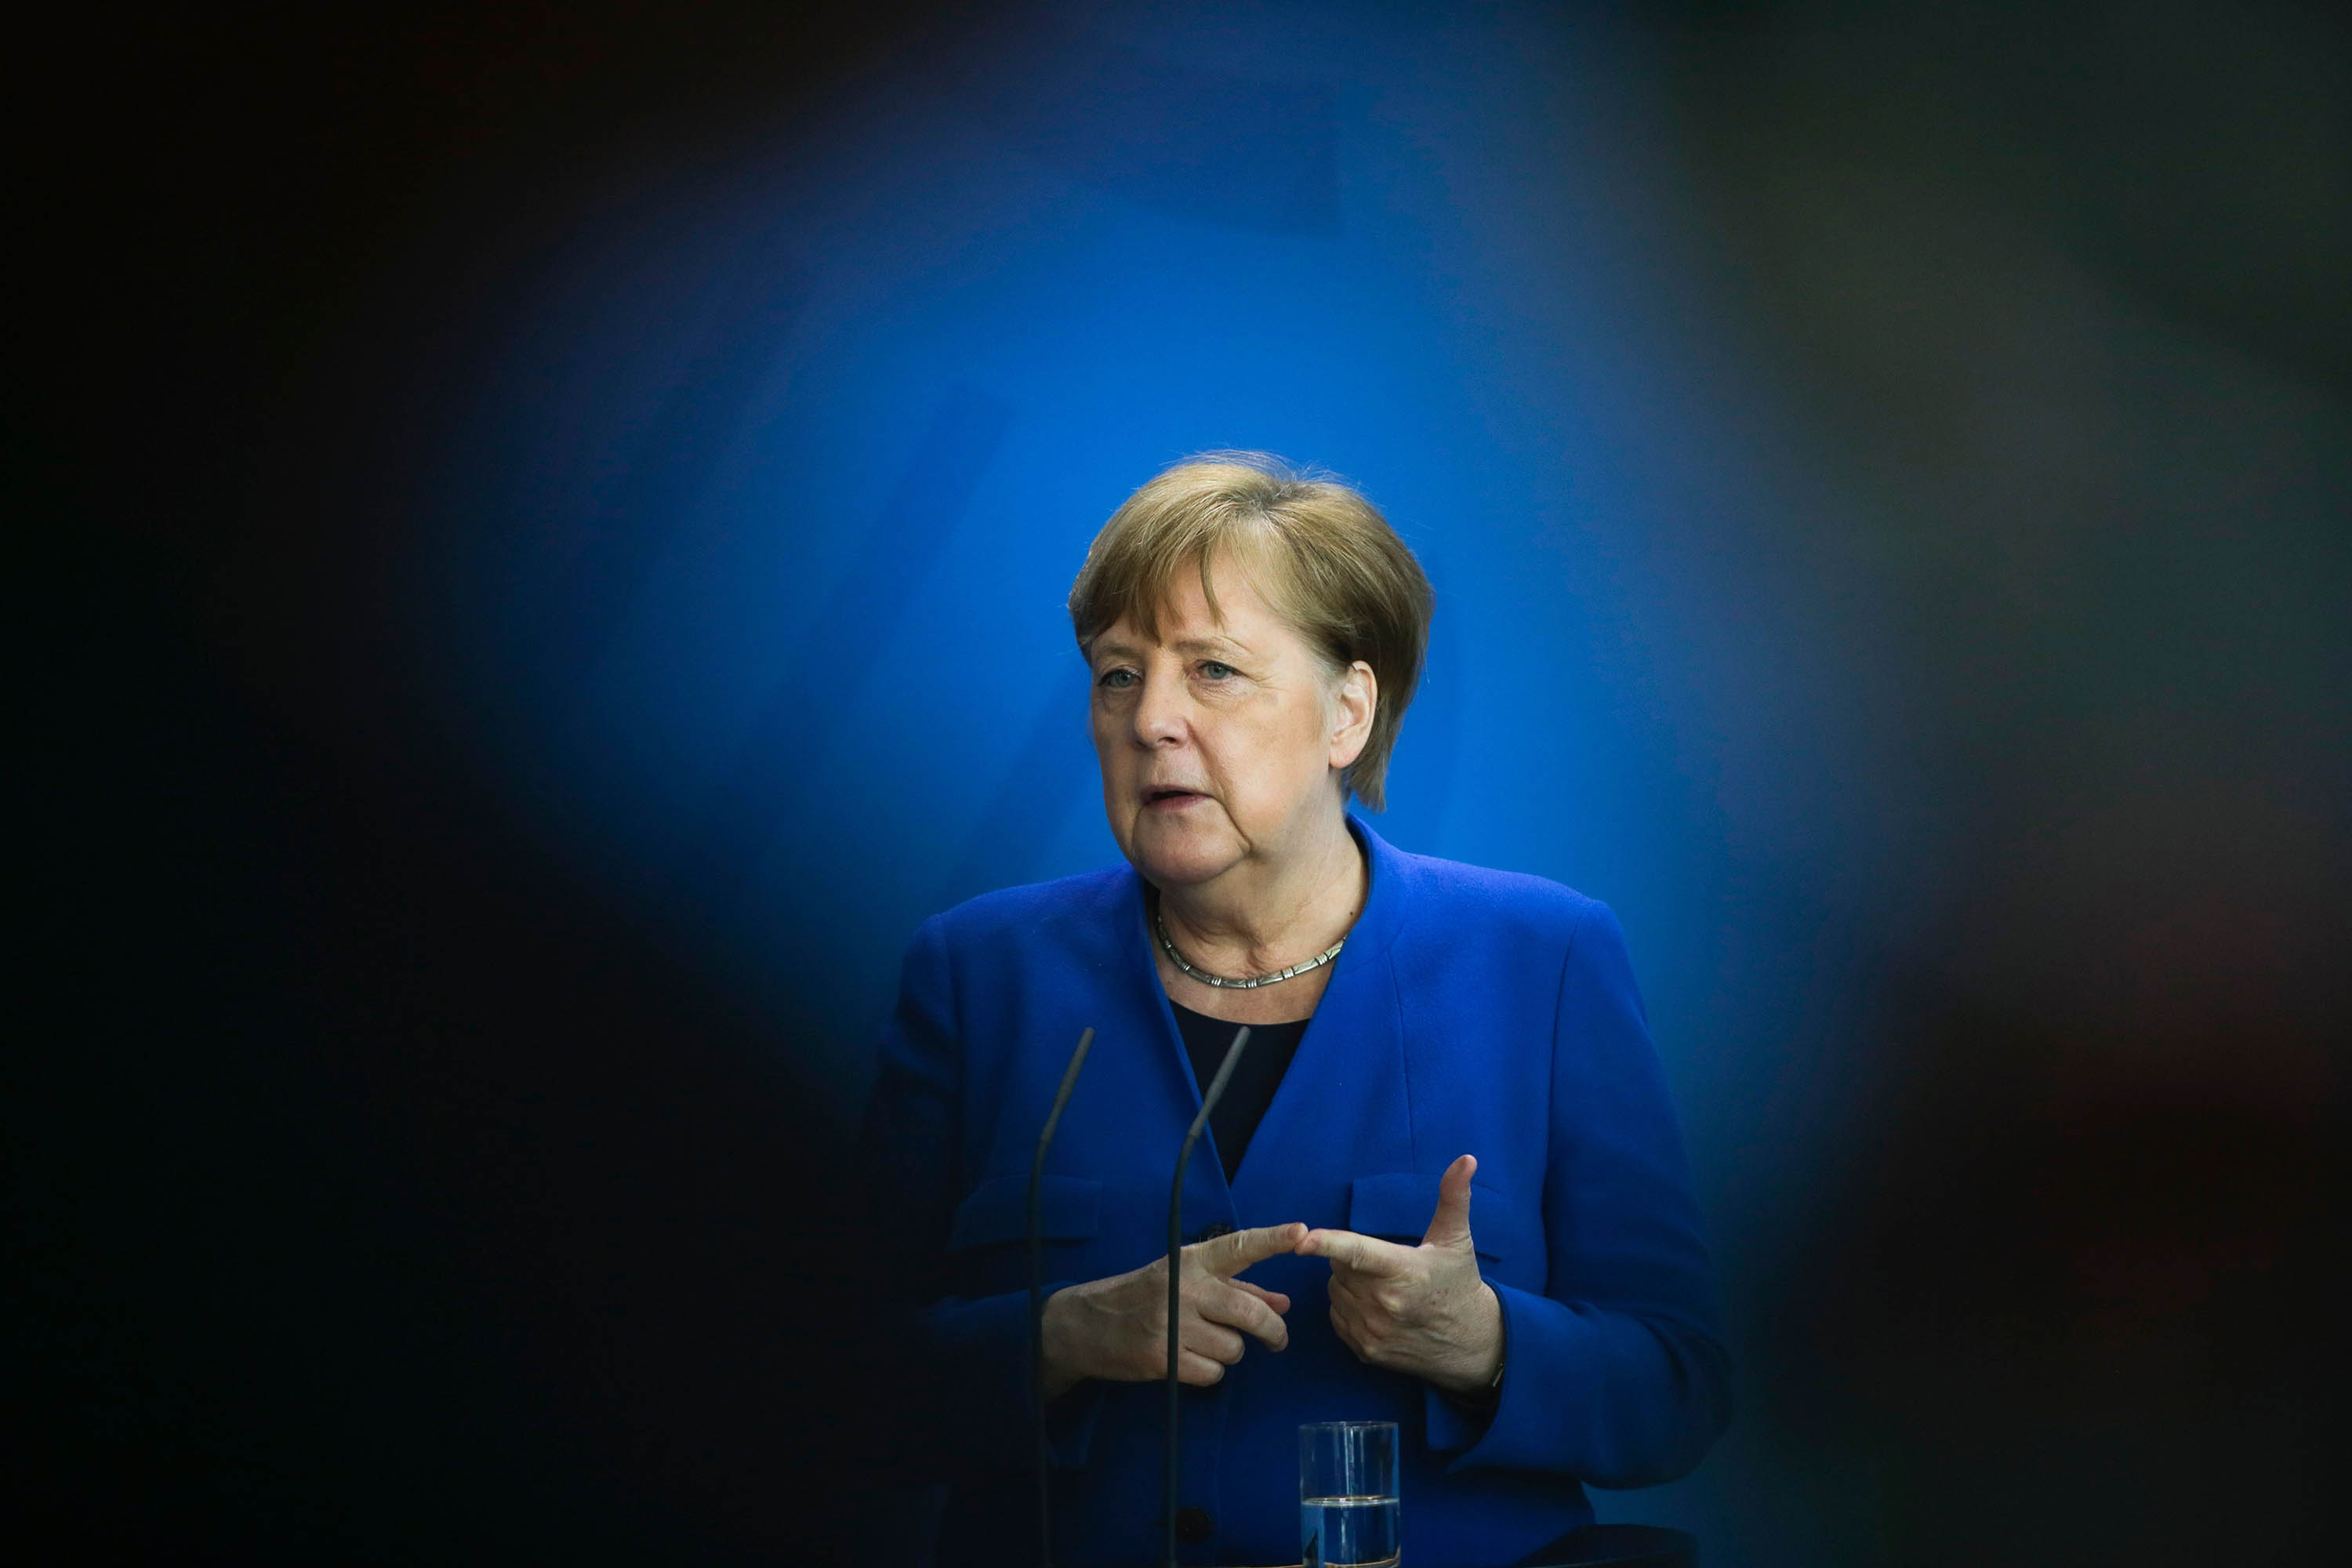 German Chancellor Angela Merkel attends a press conference about measures to avoid further spread of the coronavirus in Berlin, Germany, on April 20.